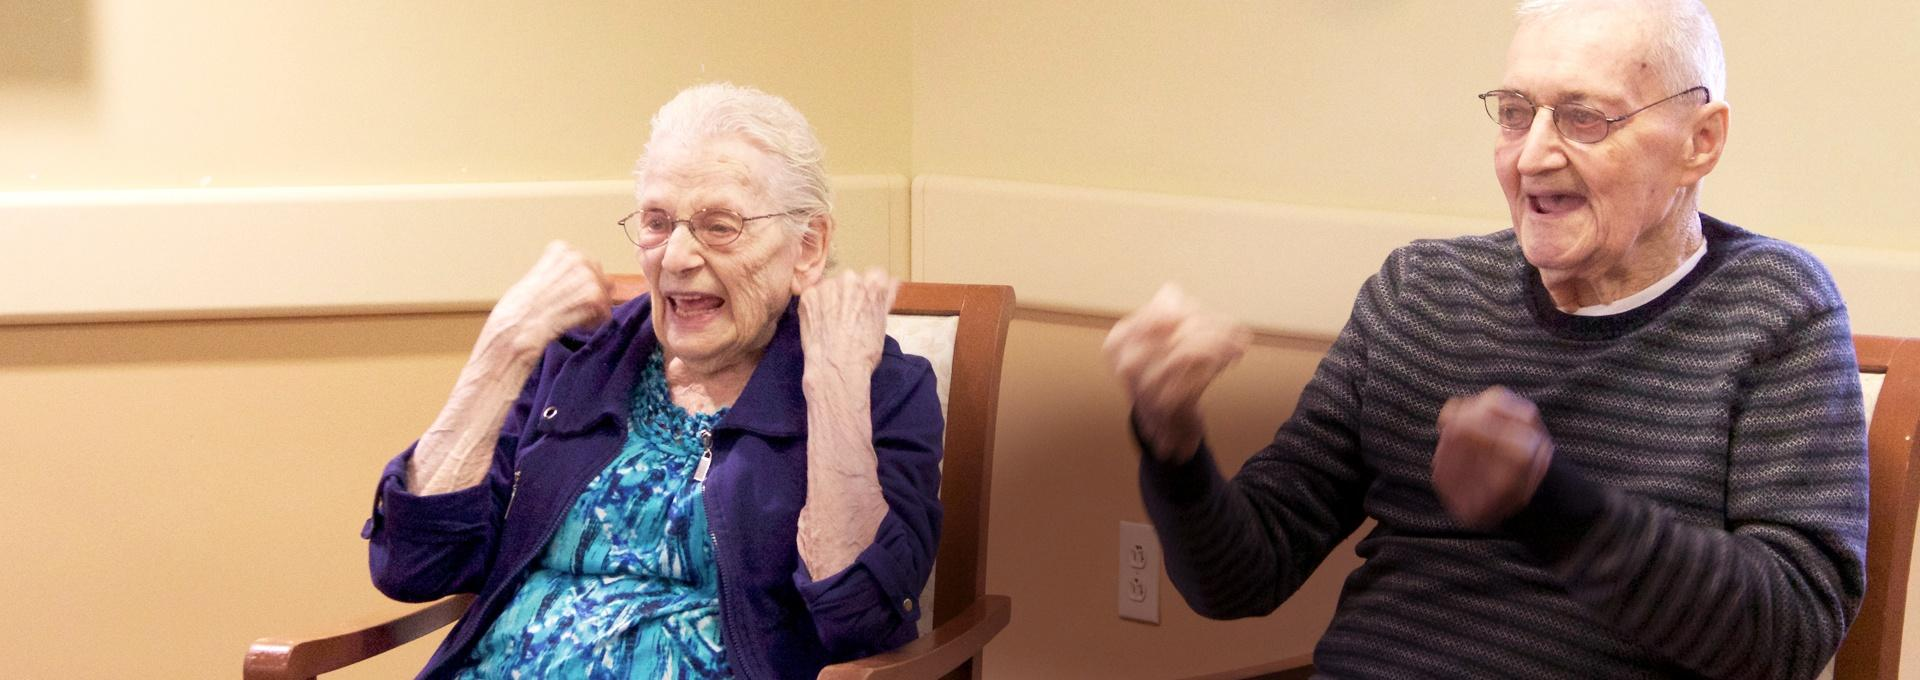 Two elderly people enjoying the moment